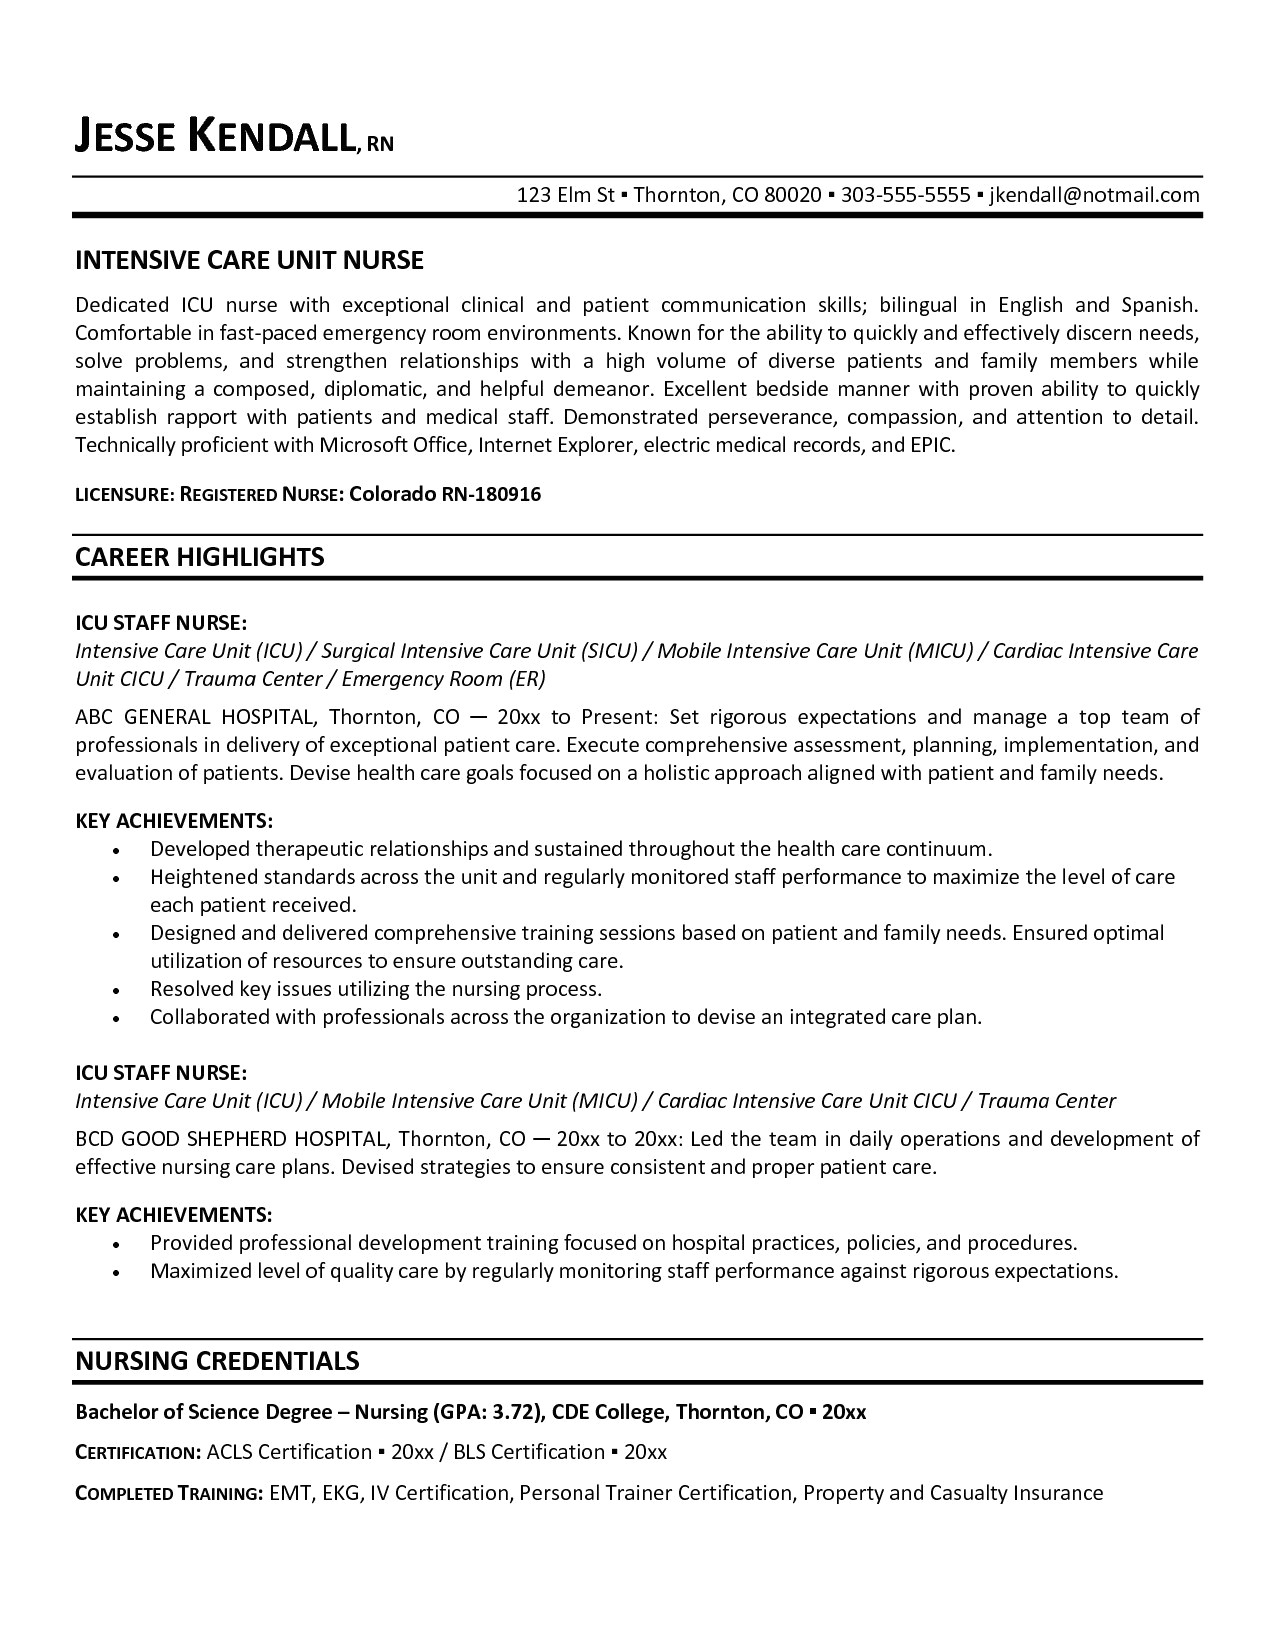 Personal Training Resume Template - Registered Nurse Quotes